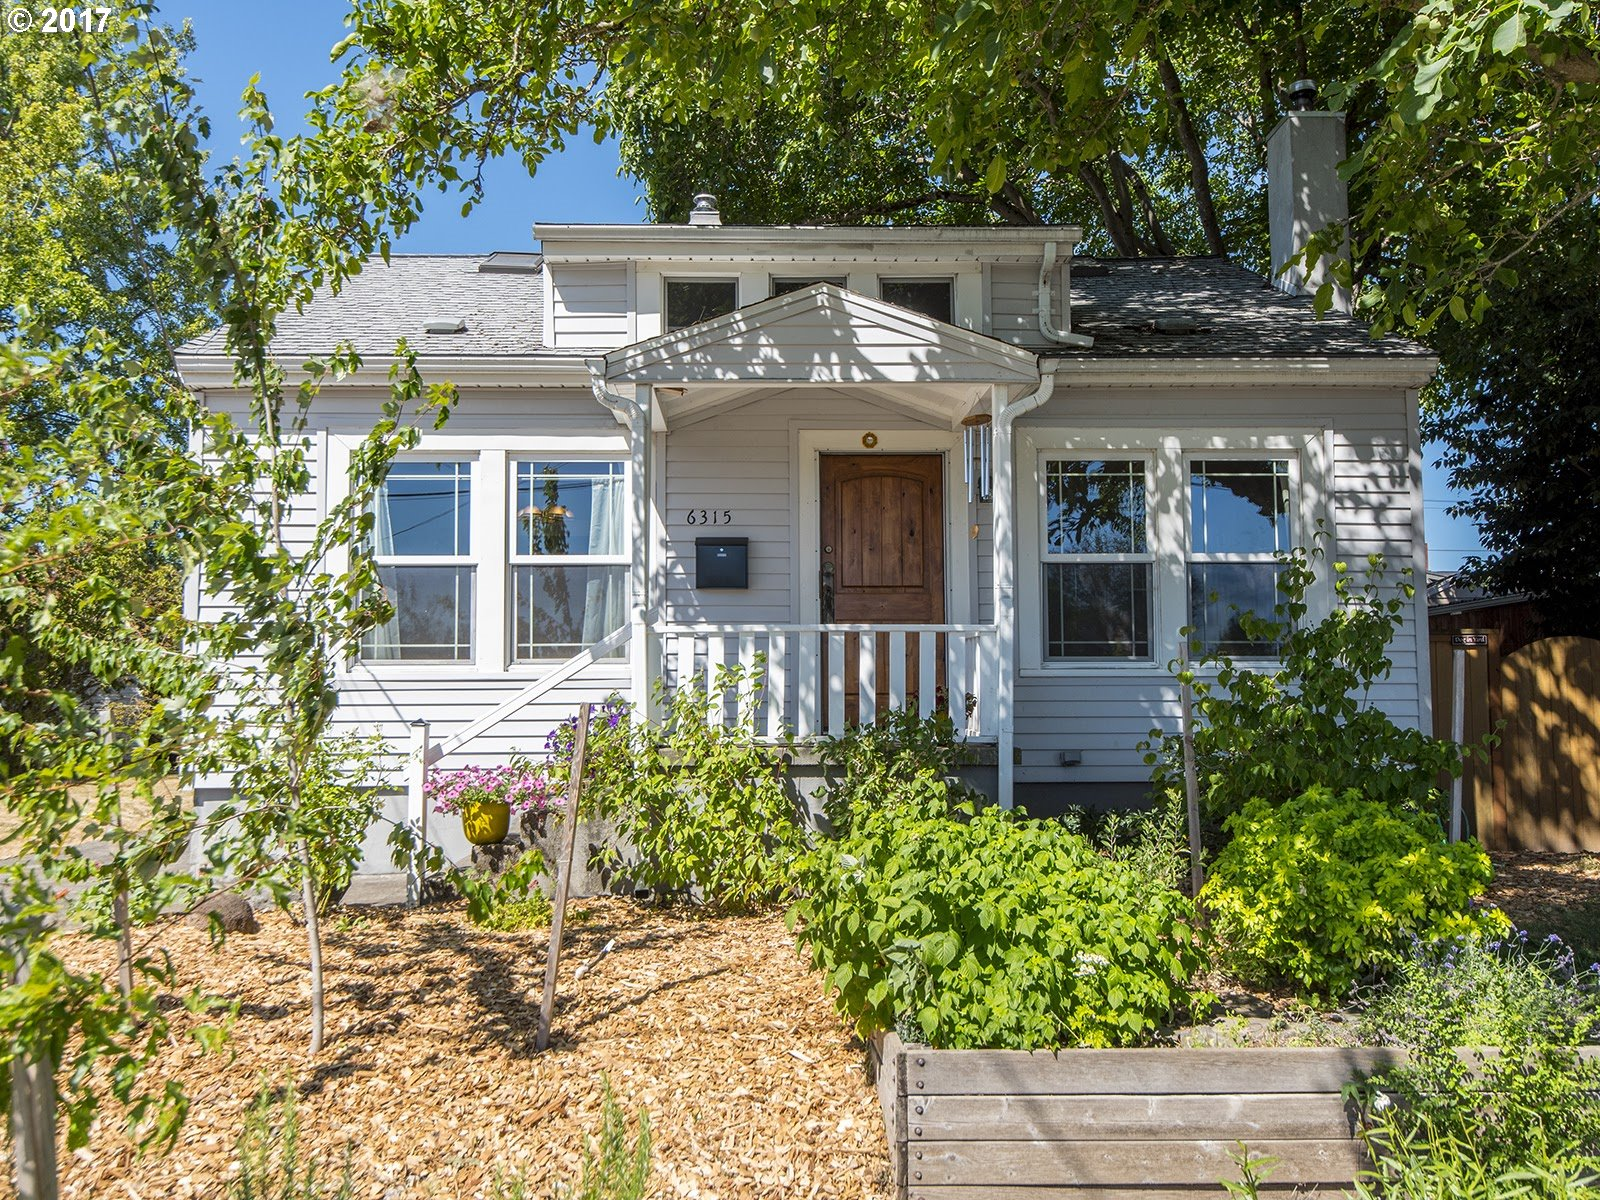 Sunny bungalow full of charm in coveted Arbor Lodge! Wide open living/dining/kitchen. Fireplace, built-ins, wainscoting. Master suite & W/D on main. Updated bath. Two beds up plus secret playroom. Mud/laundry room on main, ample basement storage, rare 2-car garage. Many updates throughout! Fenced, private backyard w/ patio, organic gardens, drip irrigation. Walk to MAX, New Seasons, coffee & more. Easy access to commuting routes!